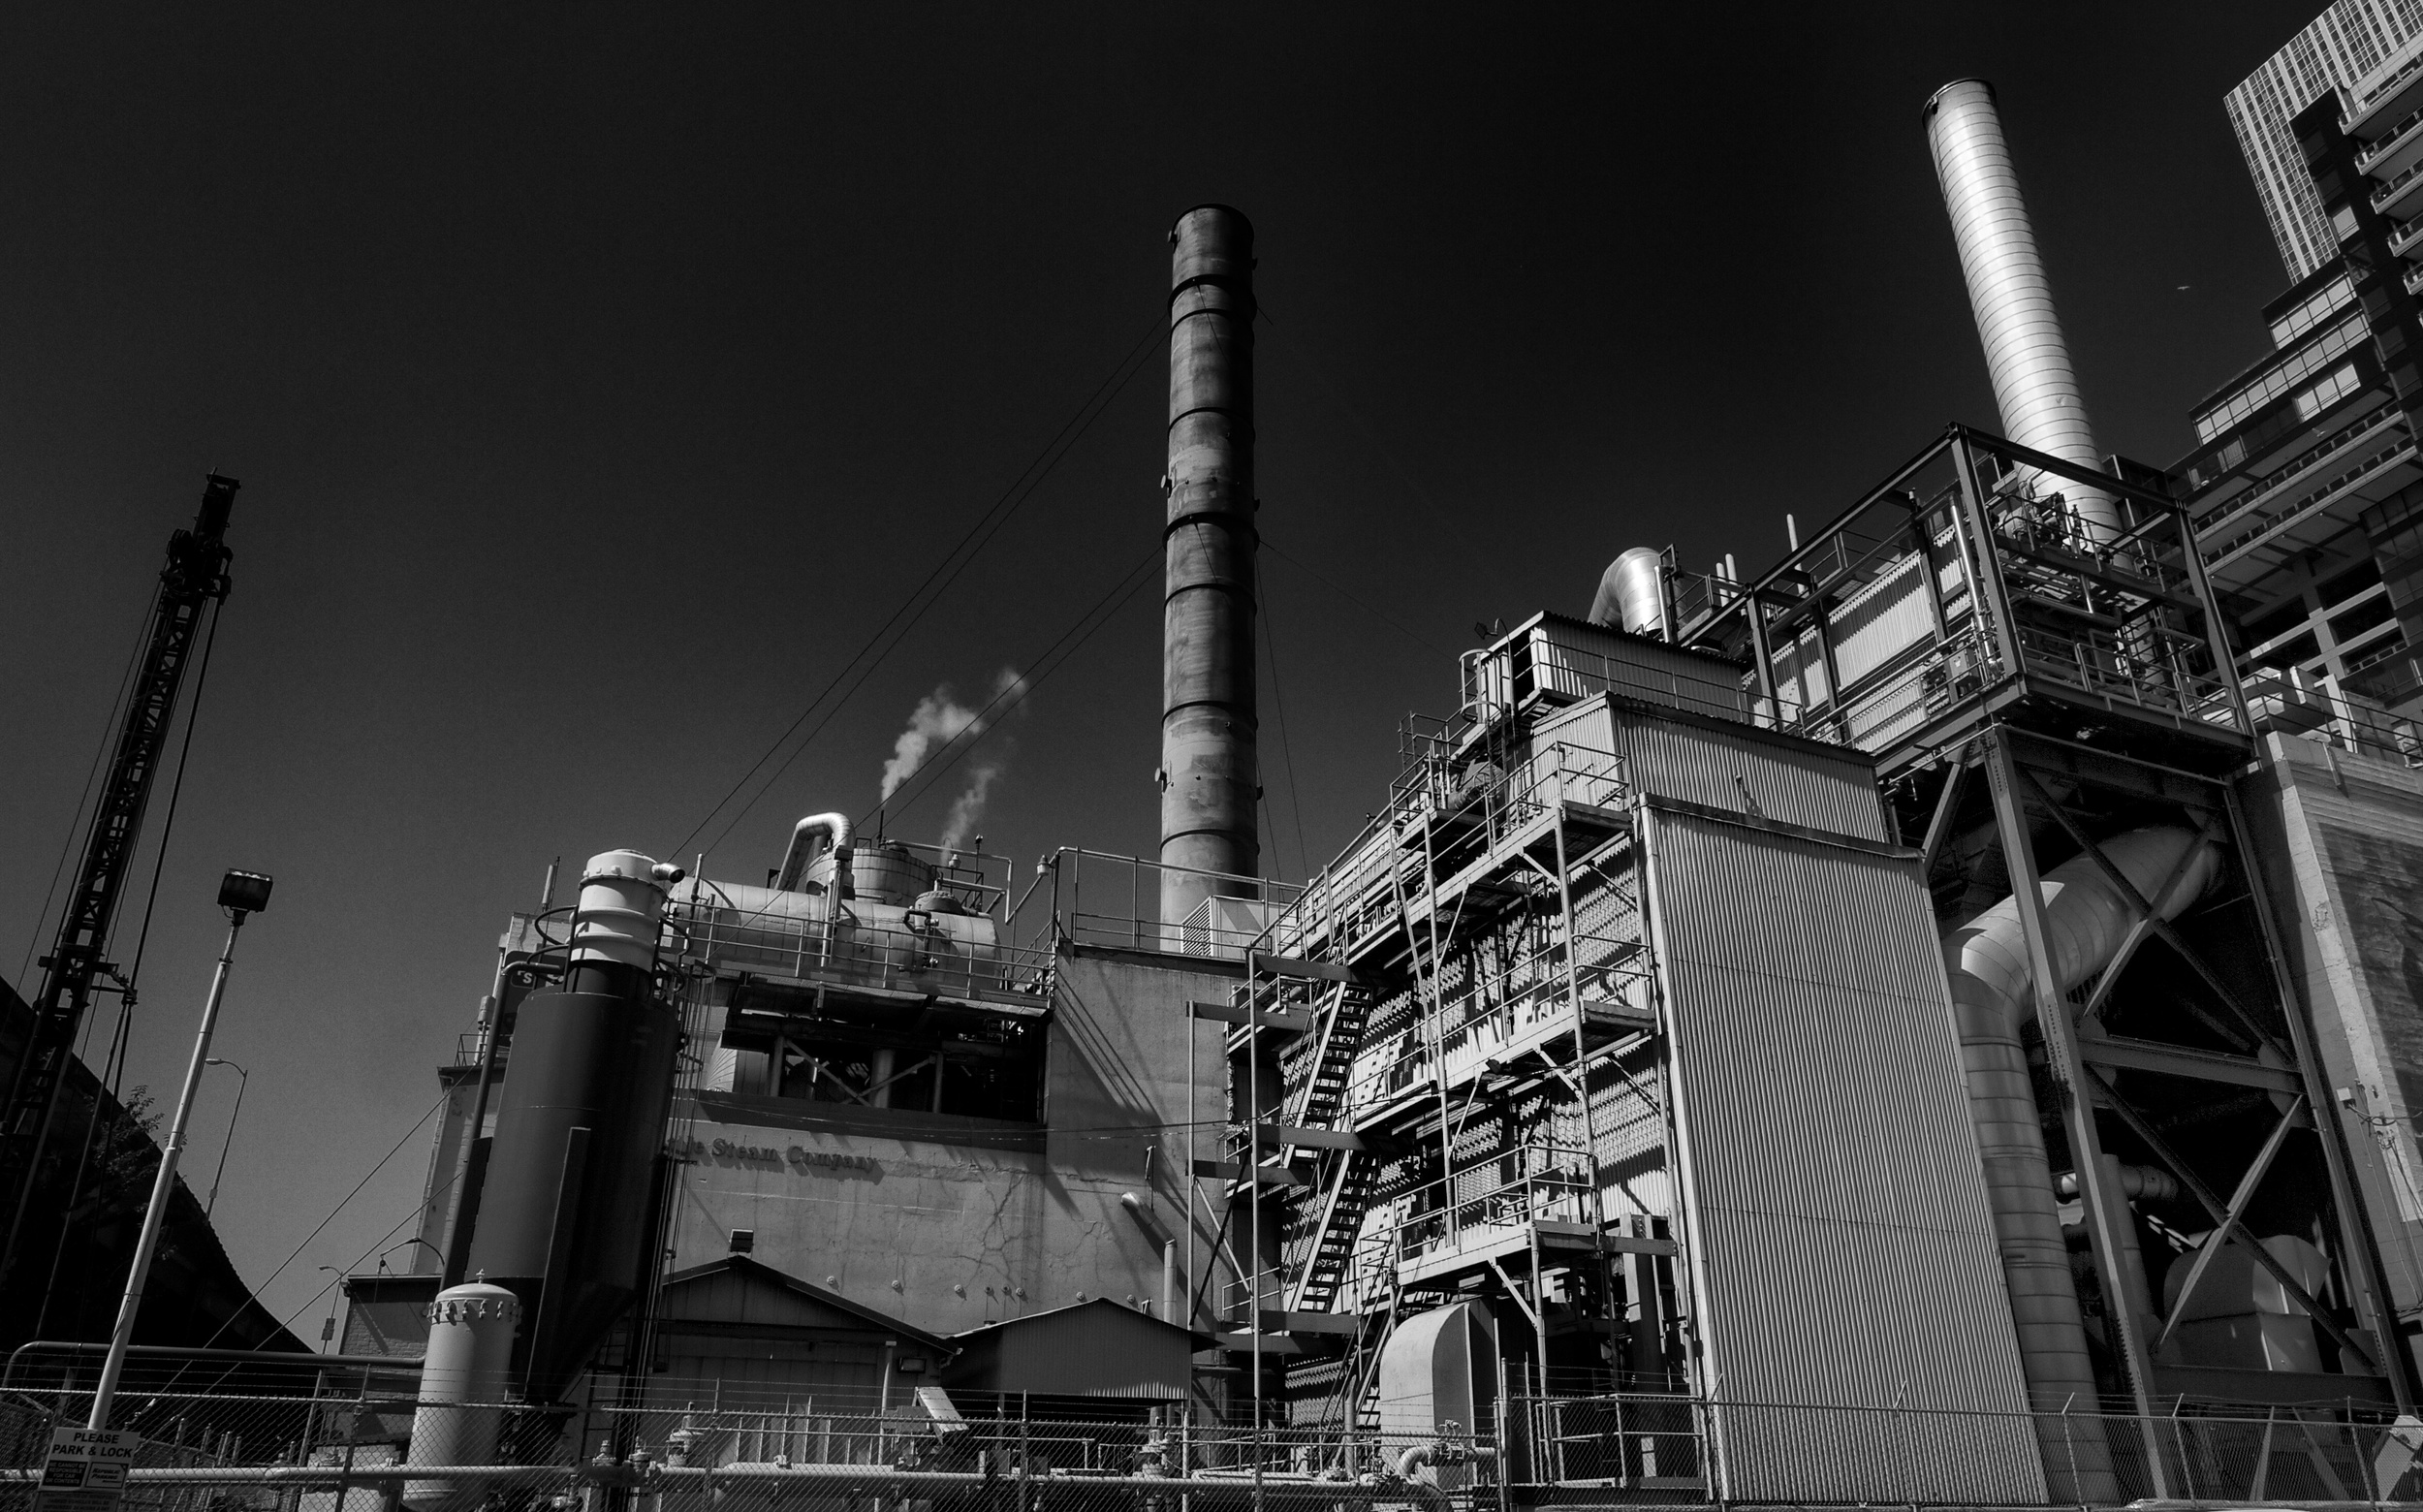 2013-08-04 at 15-16-35 Smokestack, Factory, Industry, Sky, Urban, Seattle, Steam.jpg